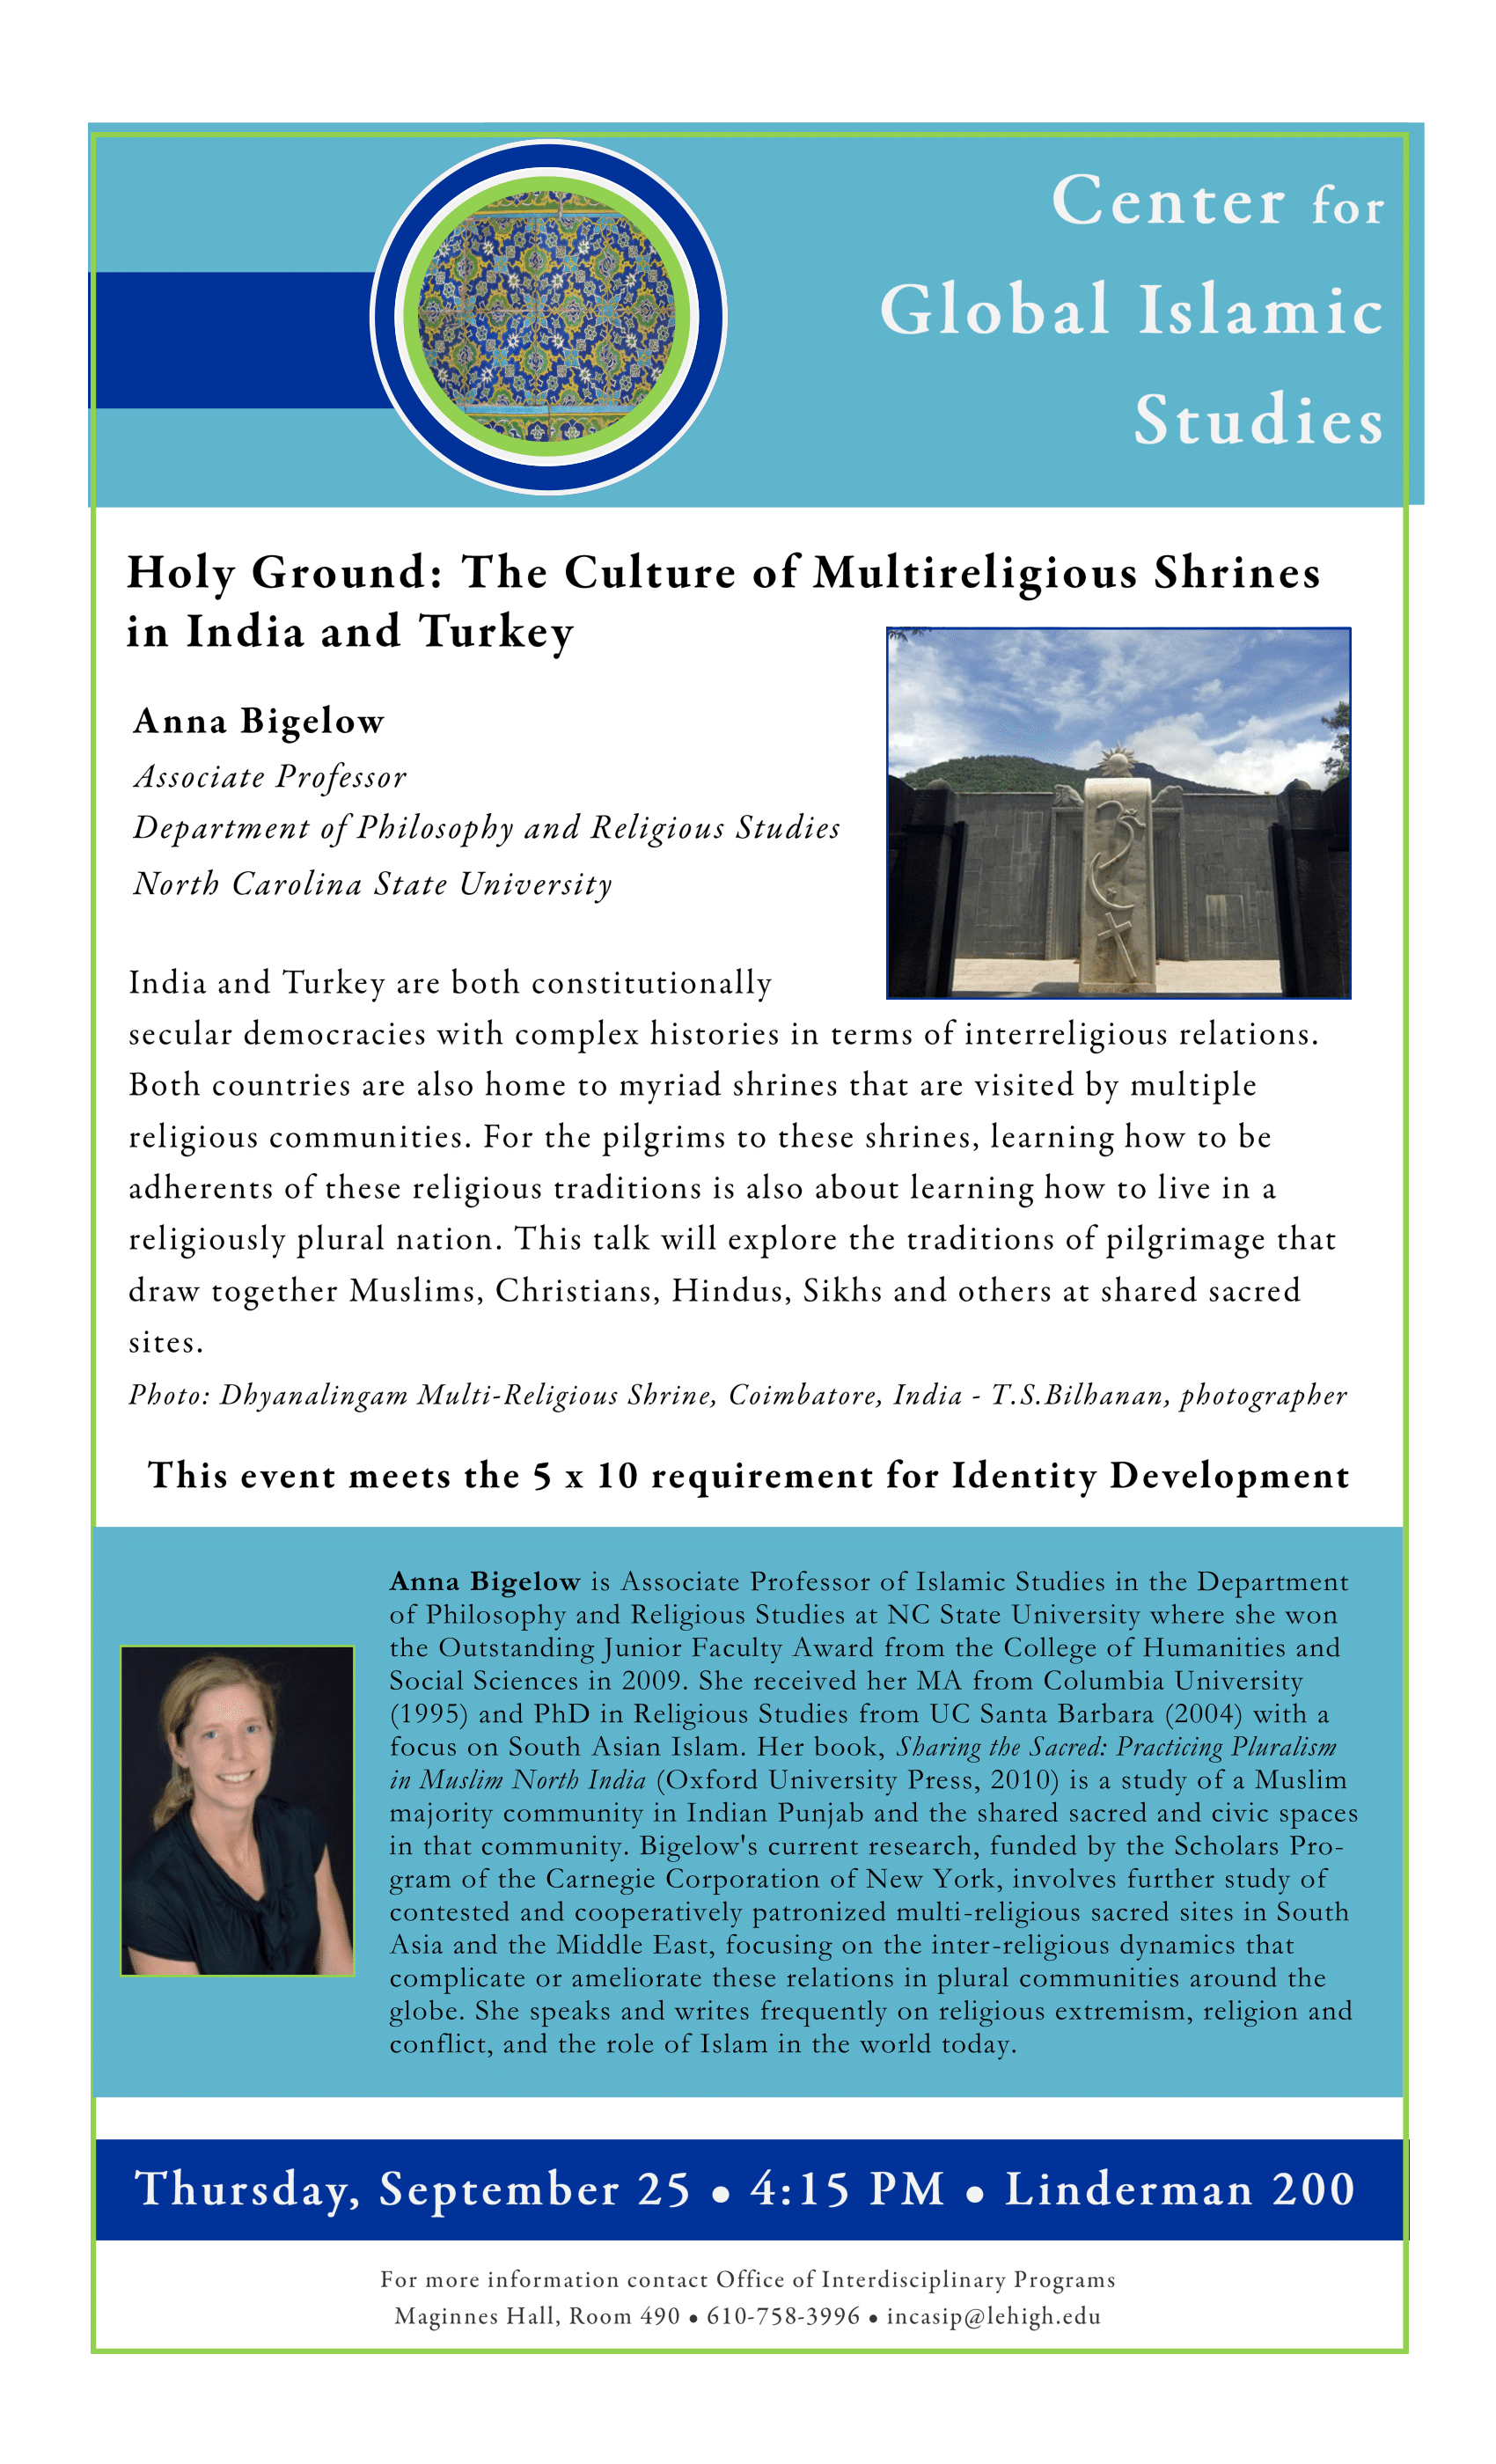 Lehigh University - Global Center for Islamic Studies - Holy Ground - Anna Bigelow